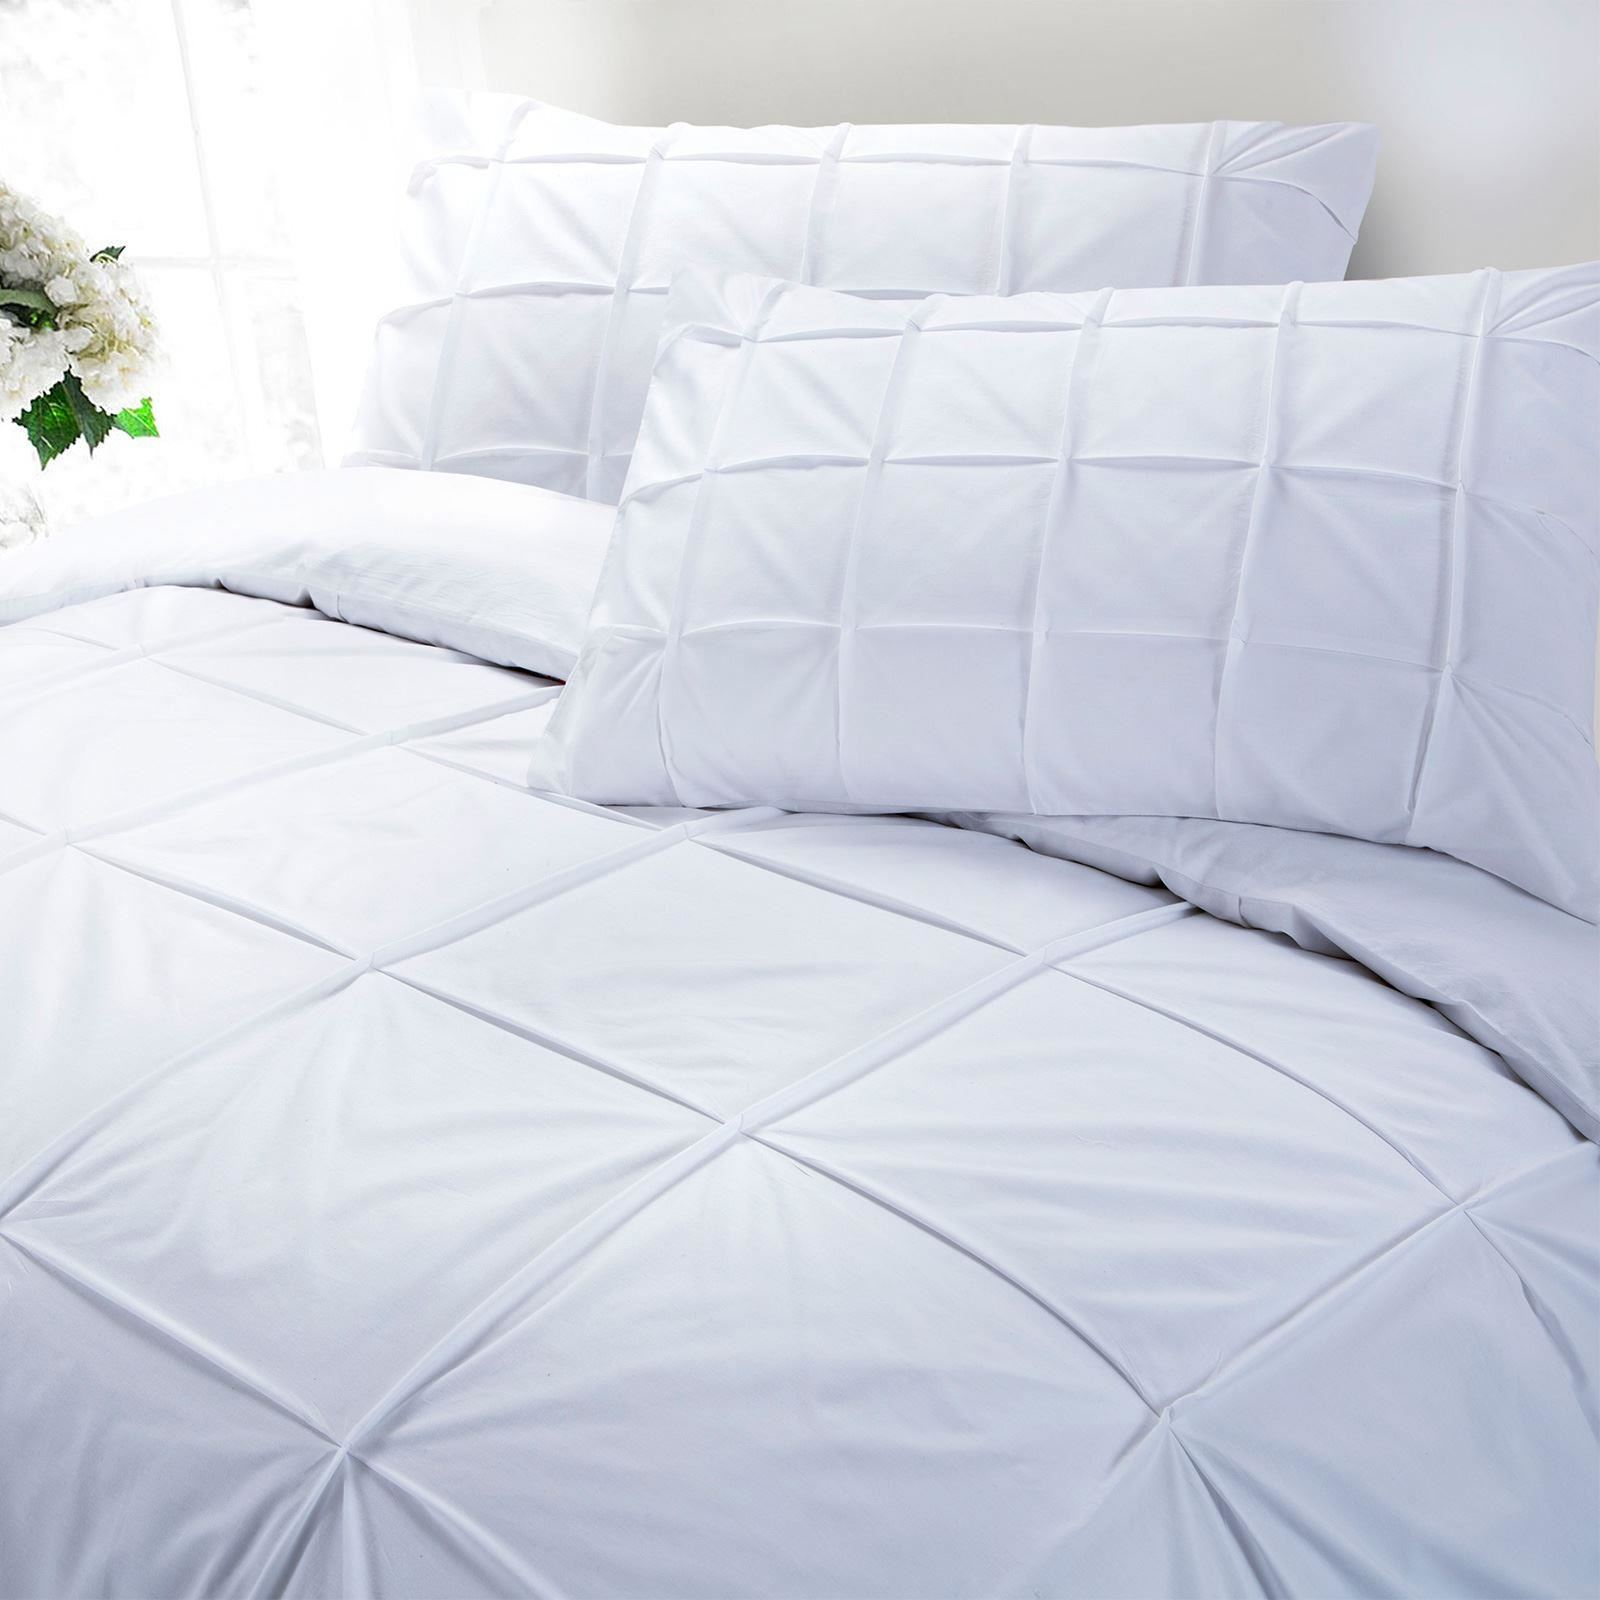 Cartier-100-Egyptian-Cotton-200-Thread-Percale-Pintuck-Duvet-Cover-Bedding-Set thumbnail 7